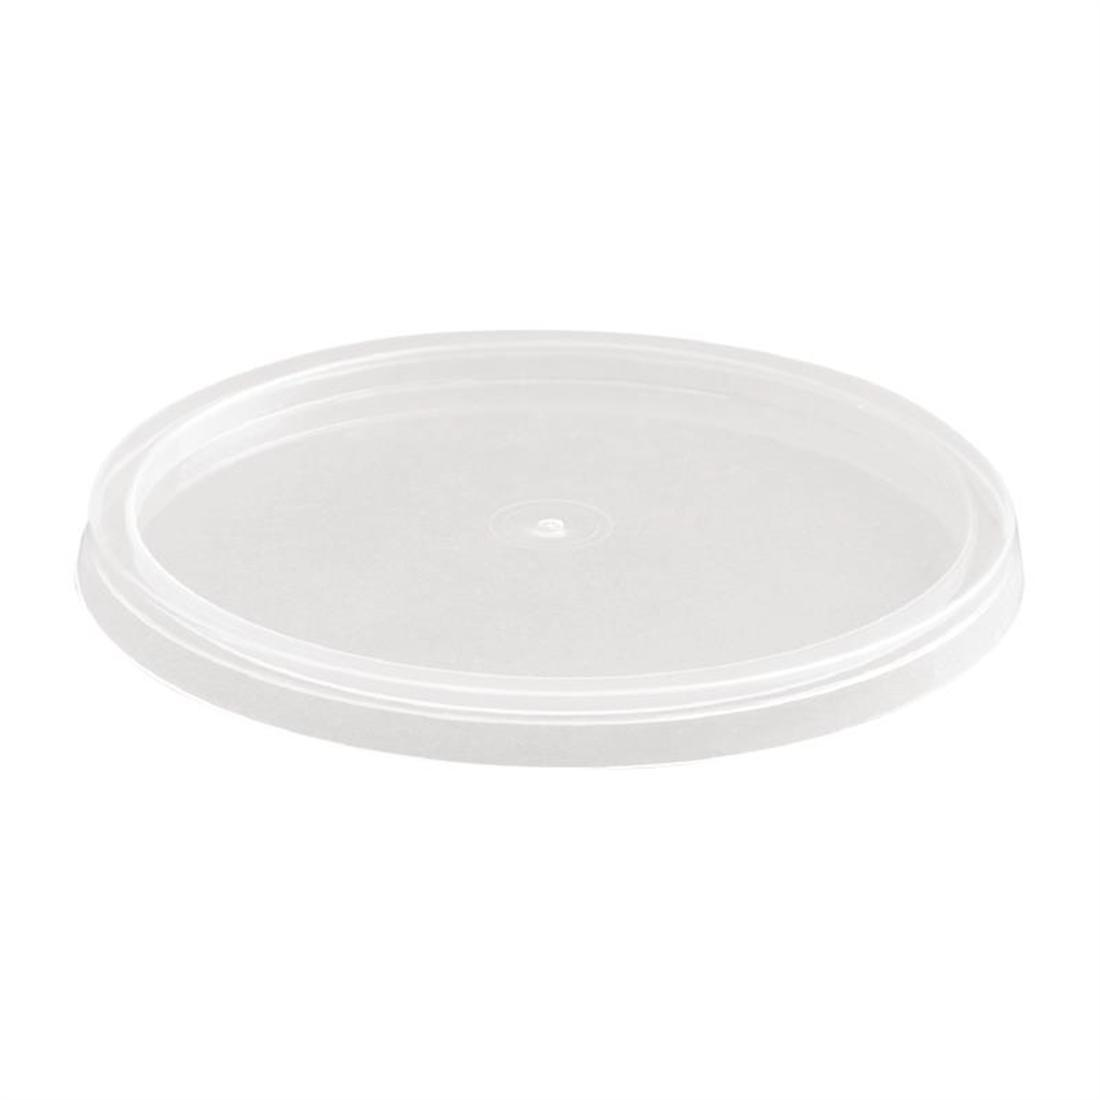 Fiesta Portion Pot Lids 50ml / 1.75oz | 100ml / 3.5oz | 150ml / 5oz